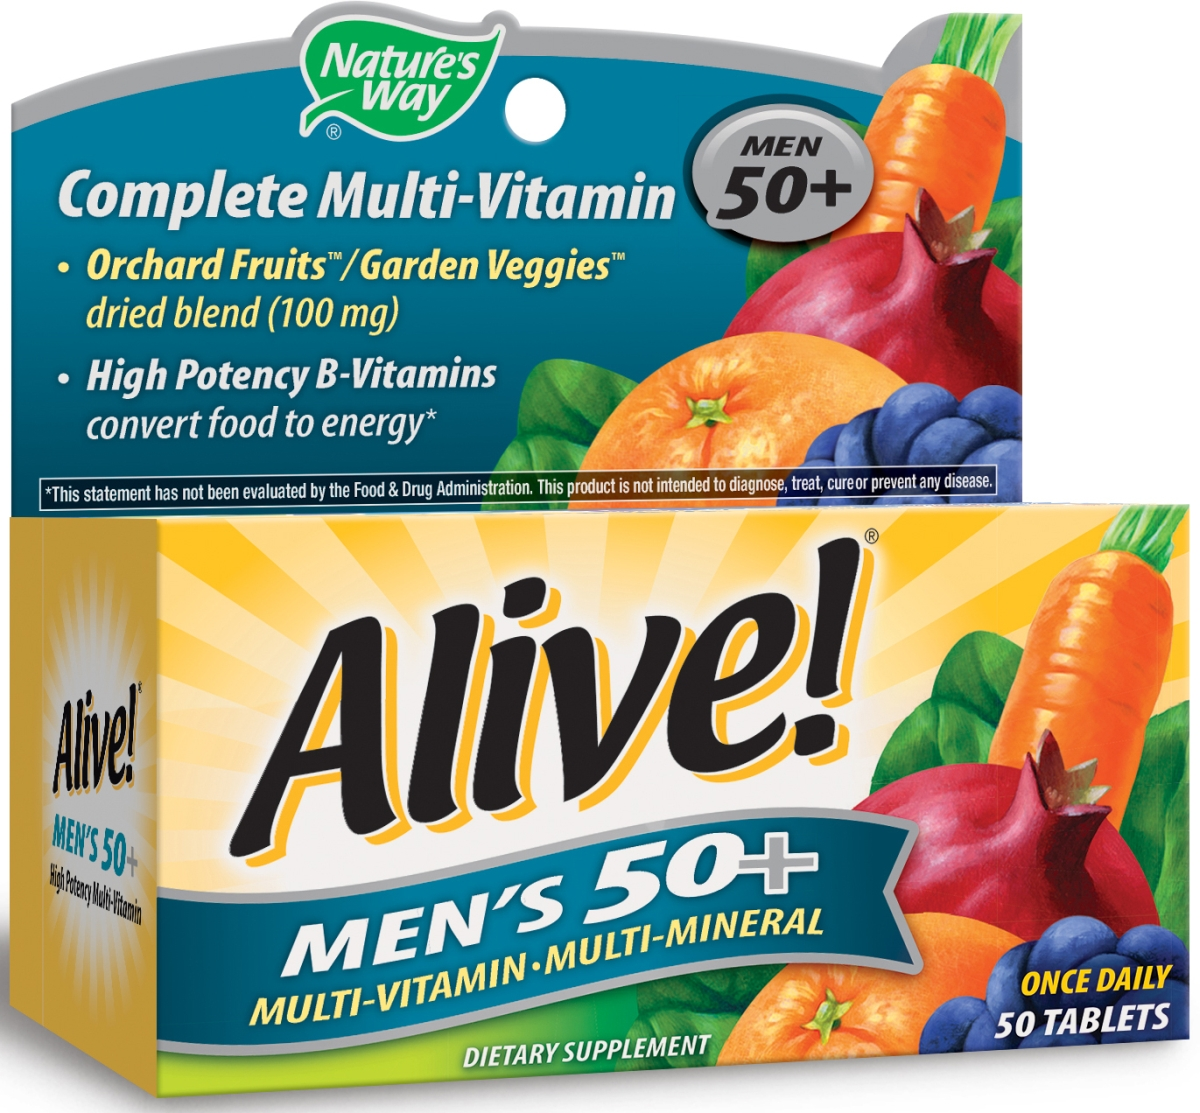 Alive! Men's 50+ Multivitamin-Multimineral 50 tabs by Nature's Way